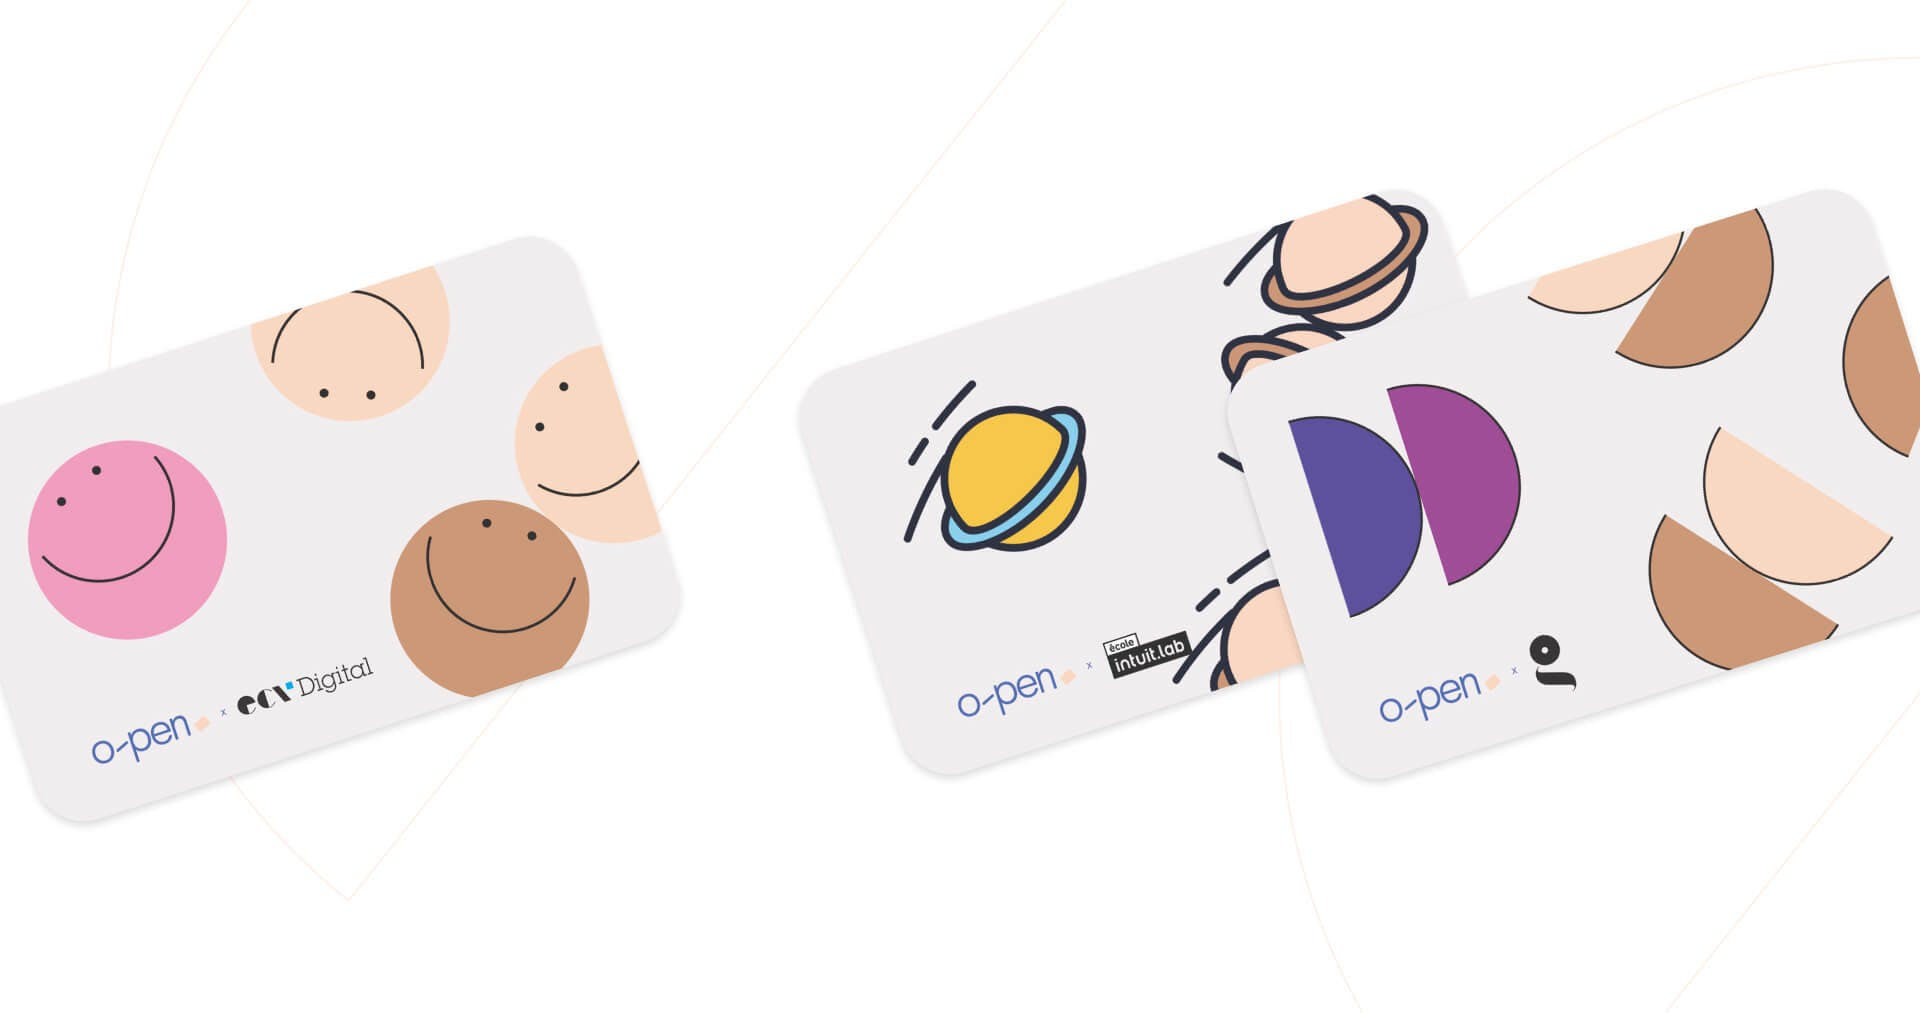 Selection of student cards with different patterns on